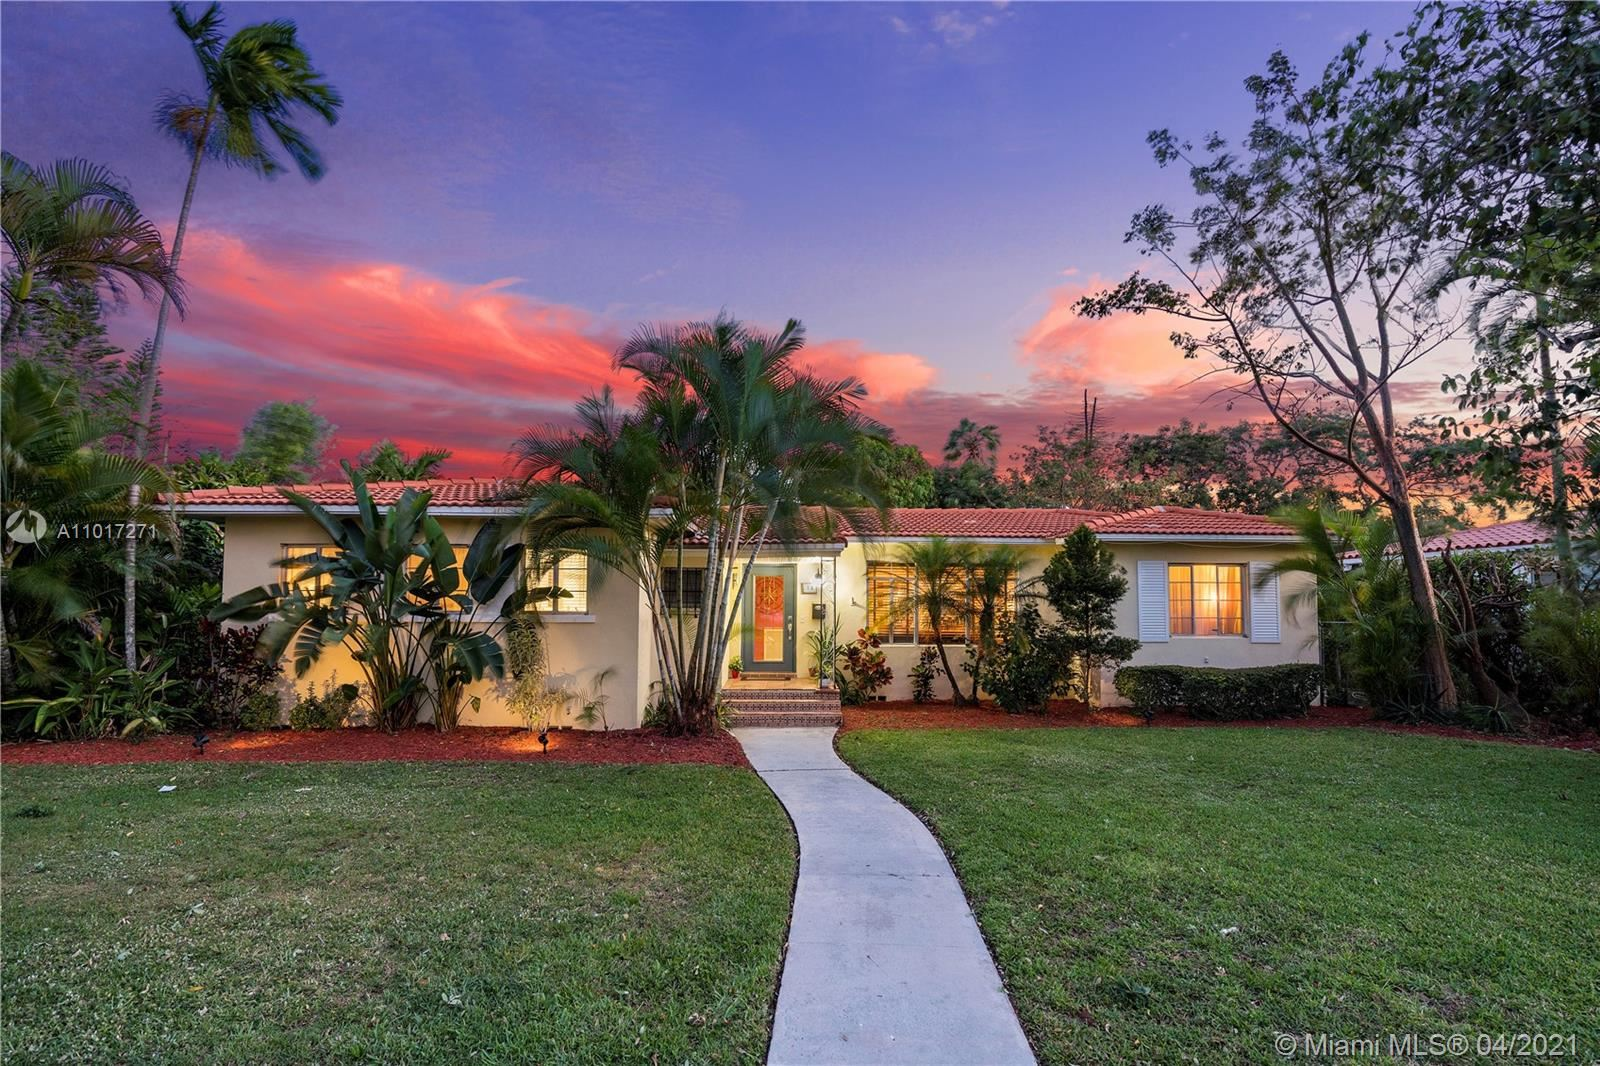 14 NE 109th St, Miami Shores, FL 33161 - #: A11017271